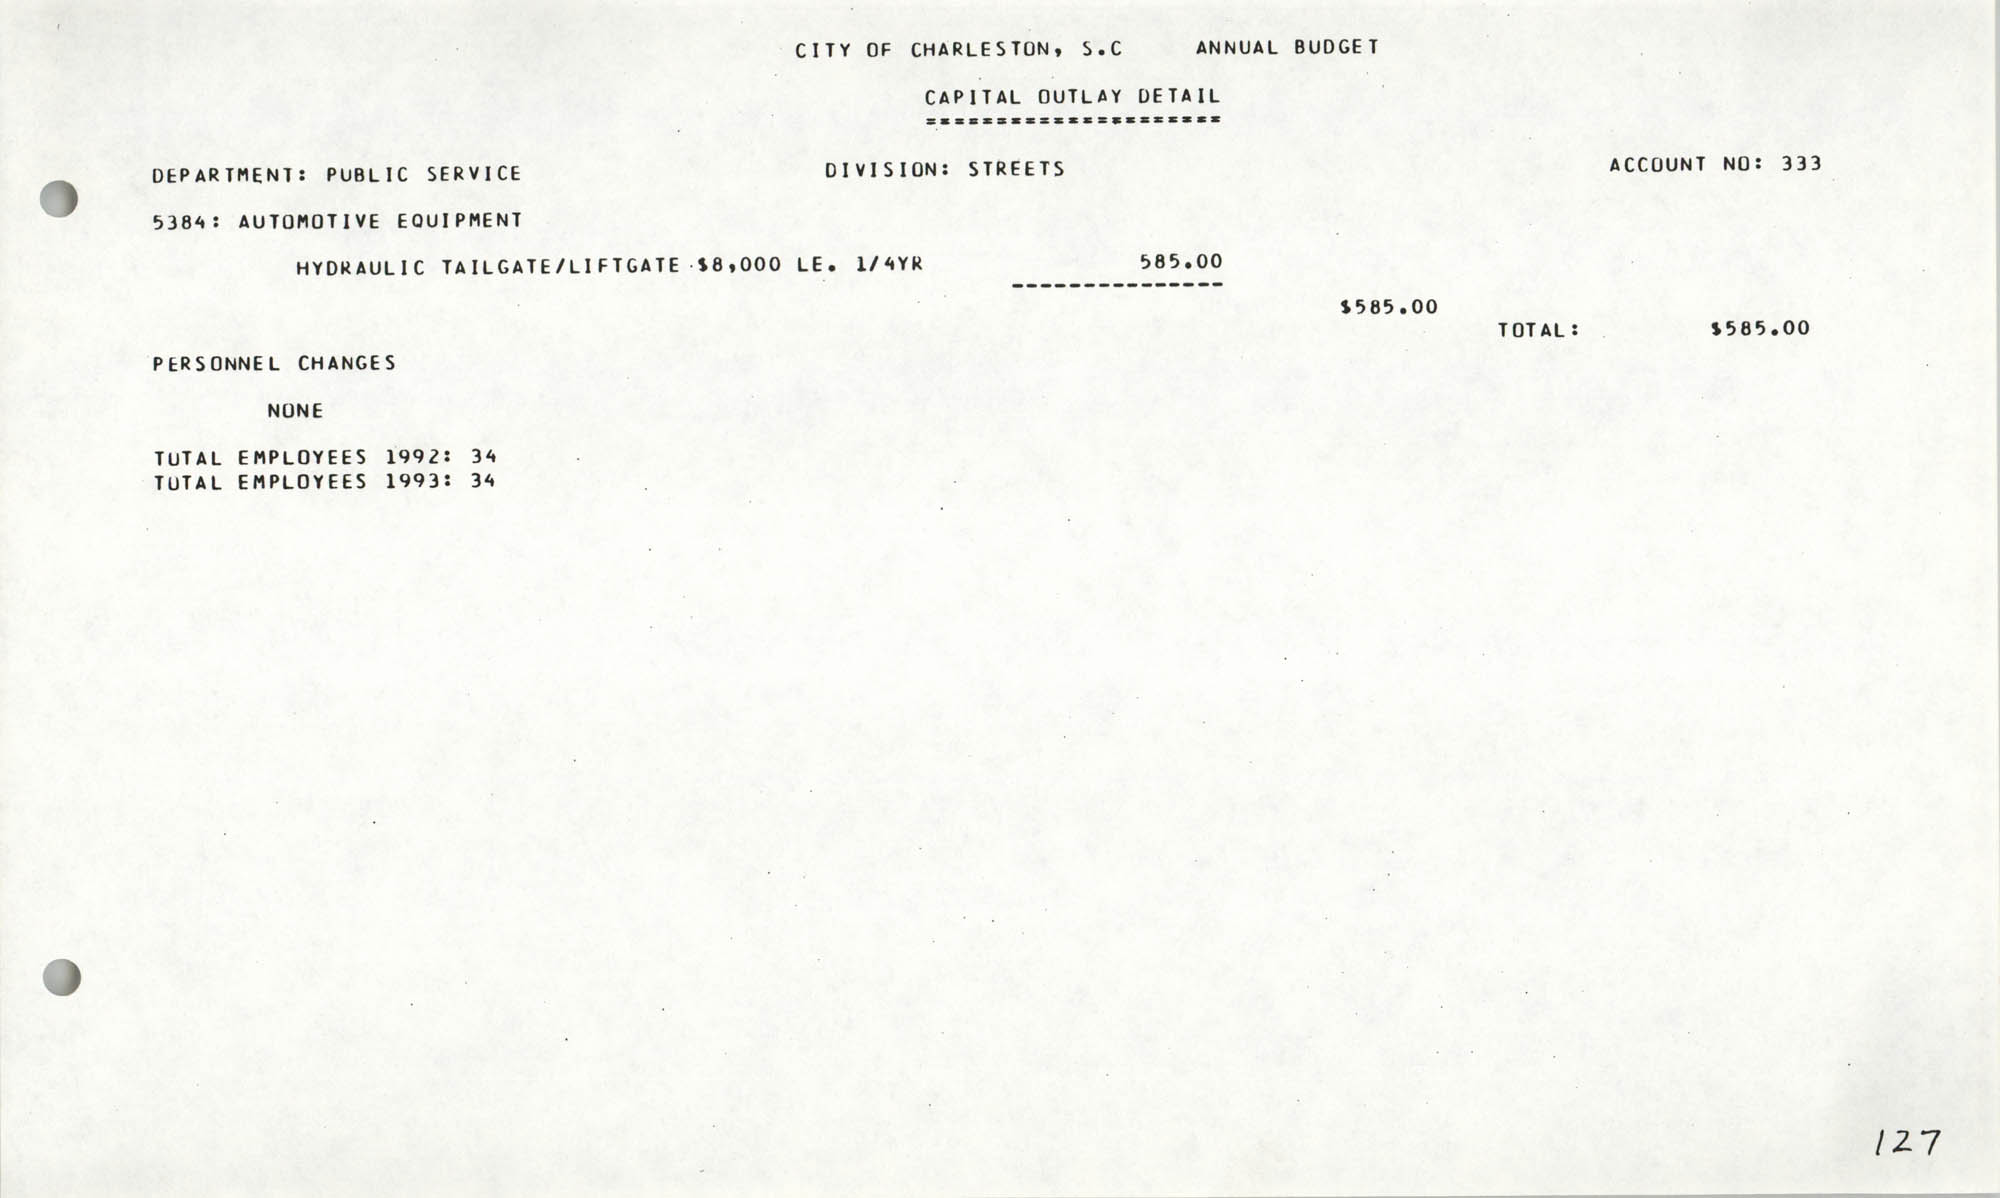 The City Council of Charleston, South Carolina, 1993 Budget, Page 127